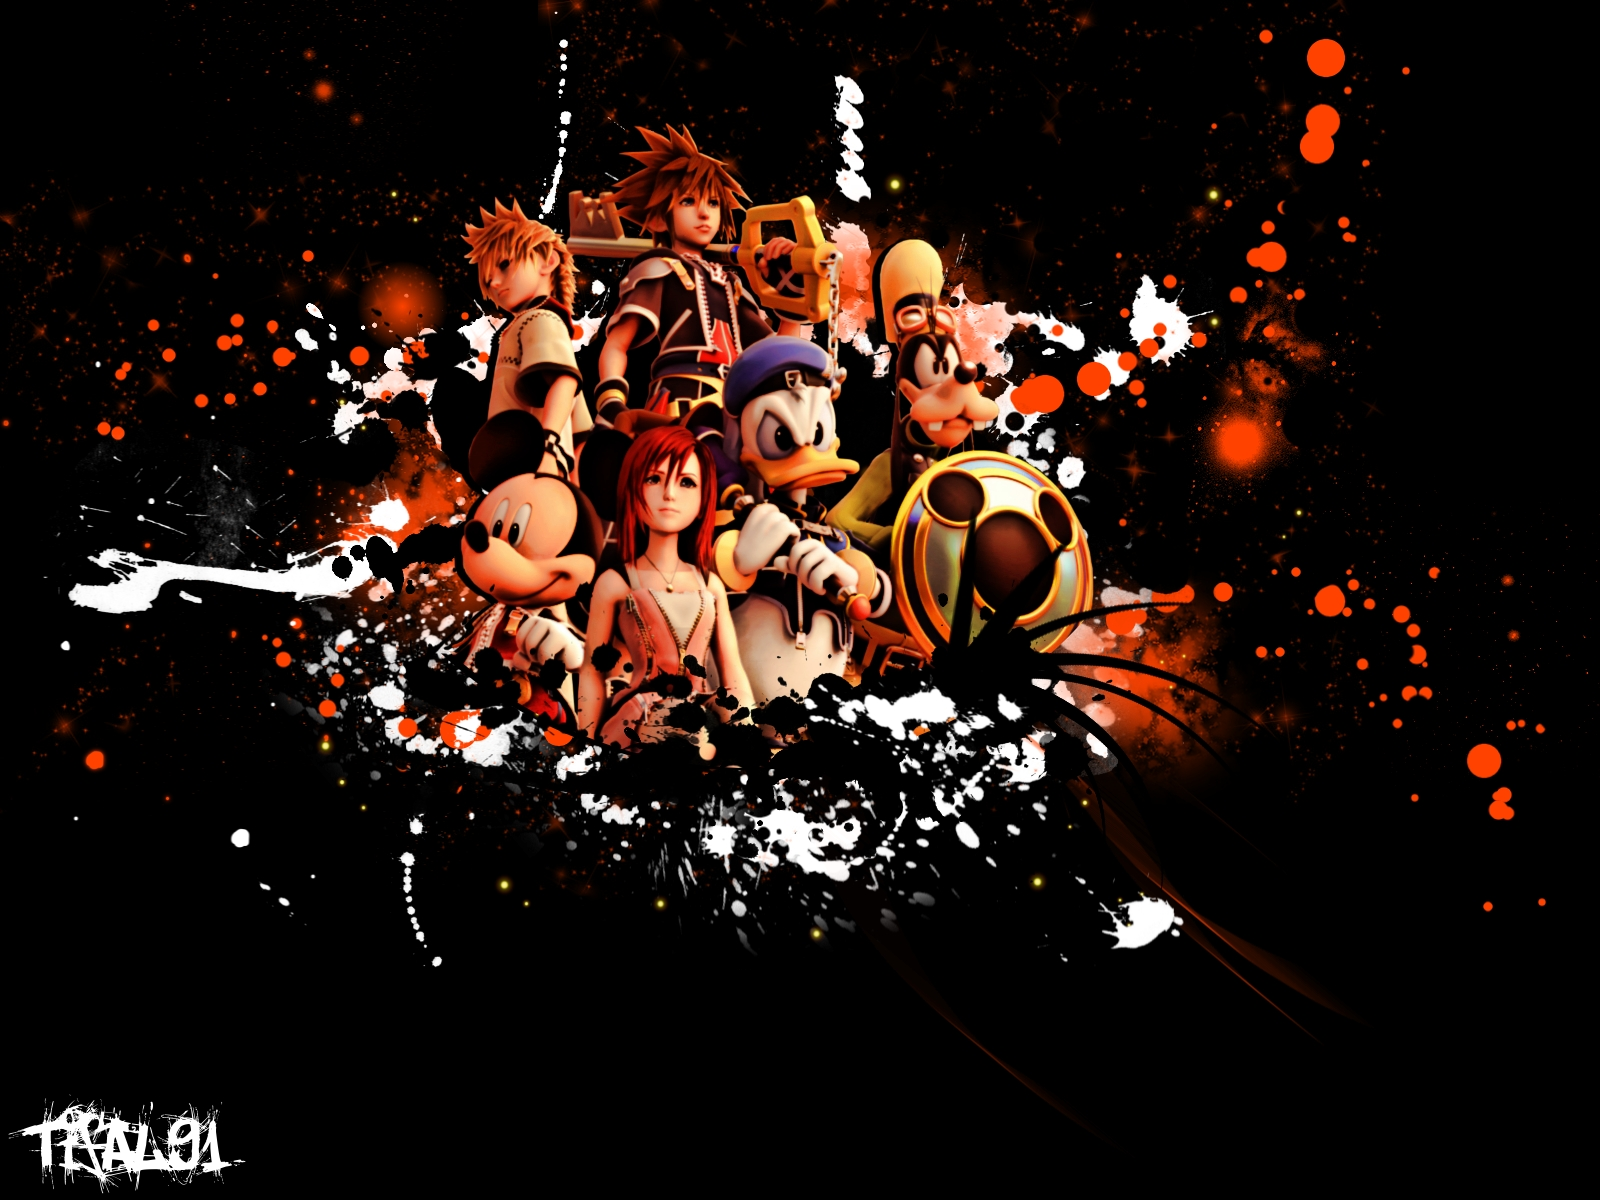 Kingdom Hearts PC Game Desktop Background 04 Imagez Only 1600x1200